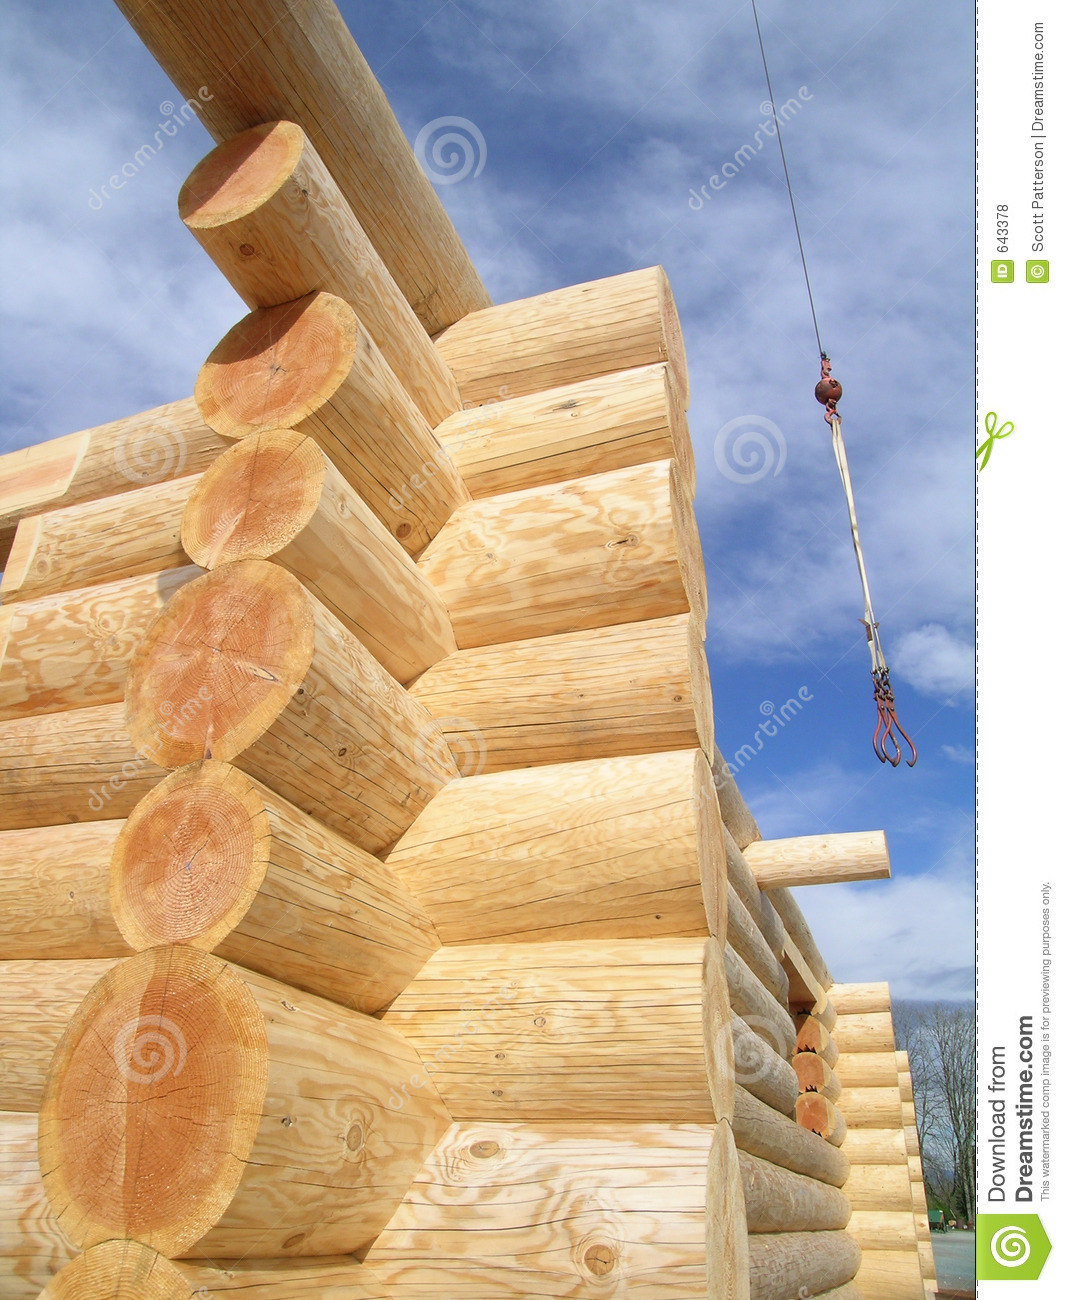 Log cabin joint royalty free stock photos image 643378 for Log construction